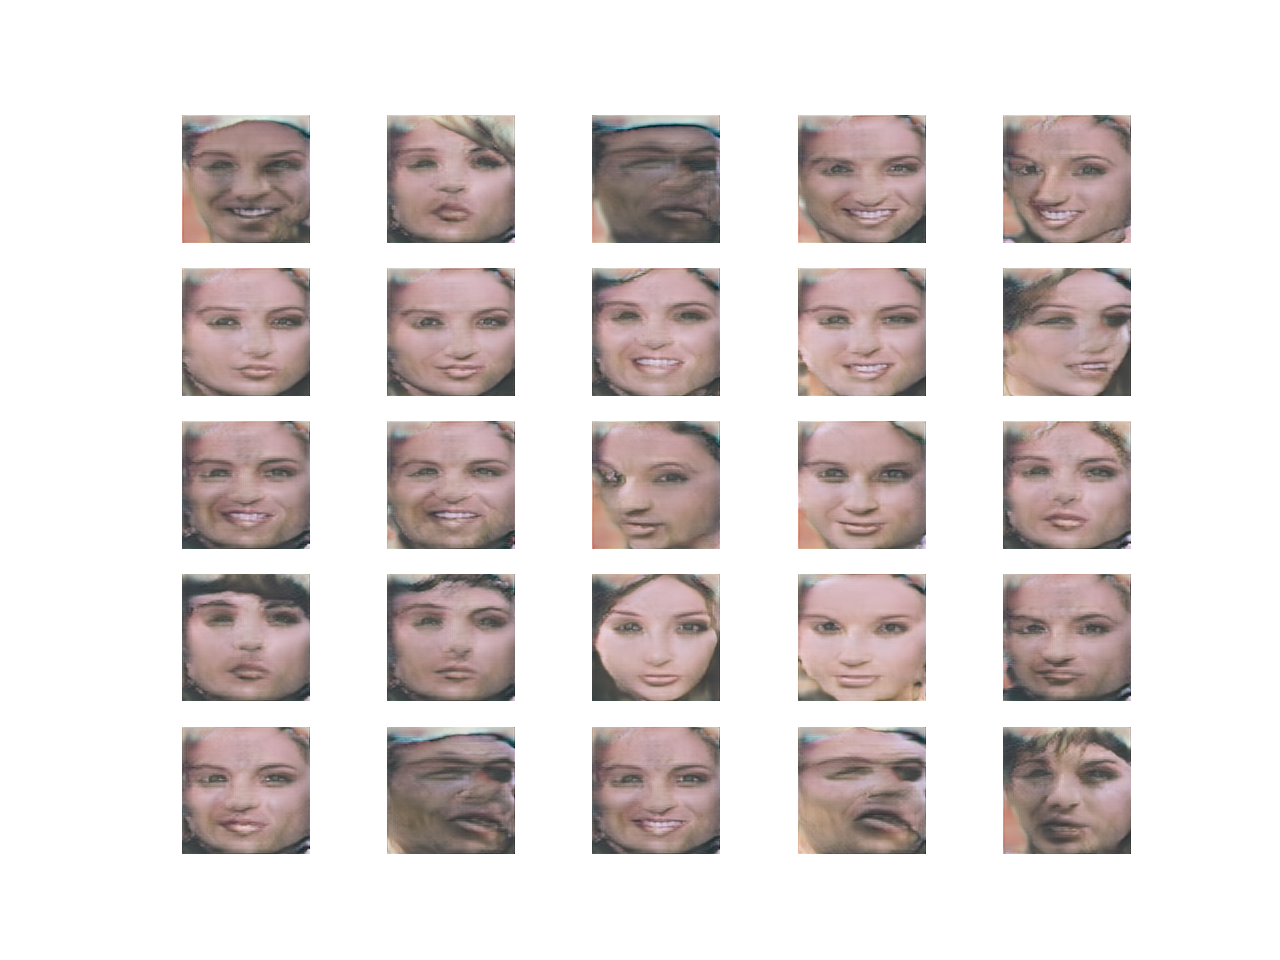 Plot of 25 Synthetic Faces With 128x128 Resolution Generated With a Final Progressive Growing GAN Model